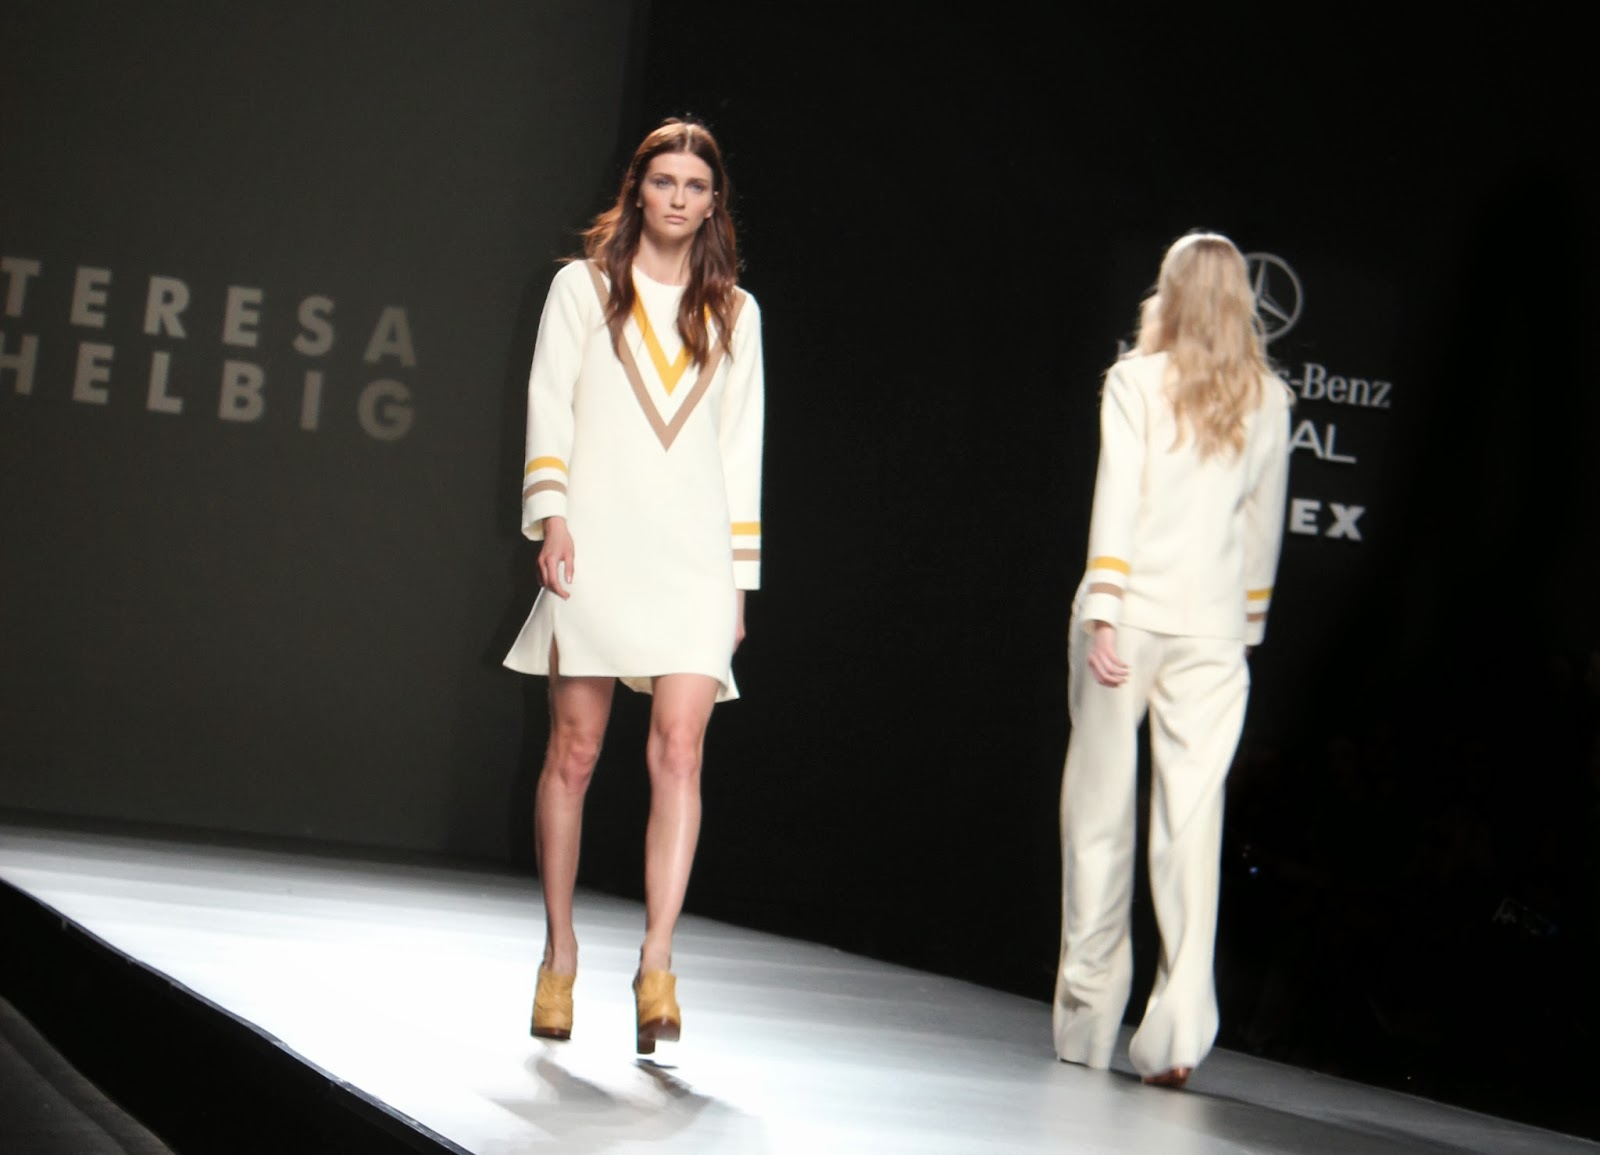 photo-MBFWM-2014-desfile-teresahelbig